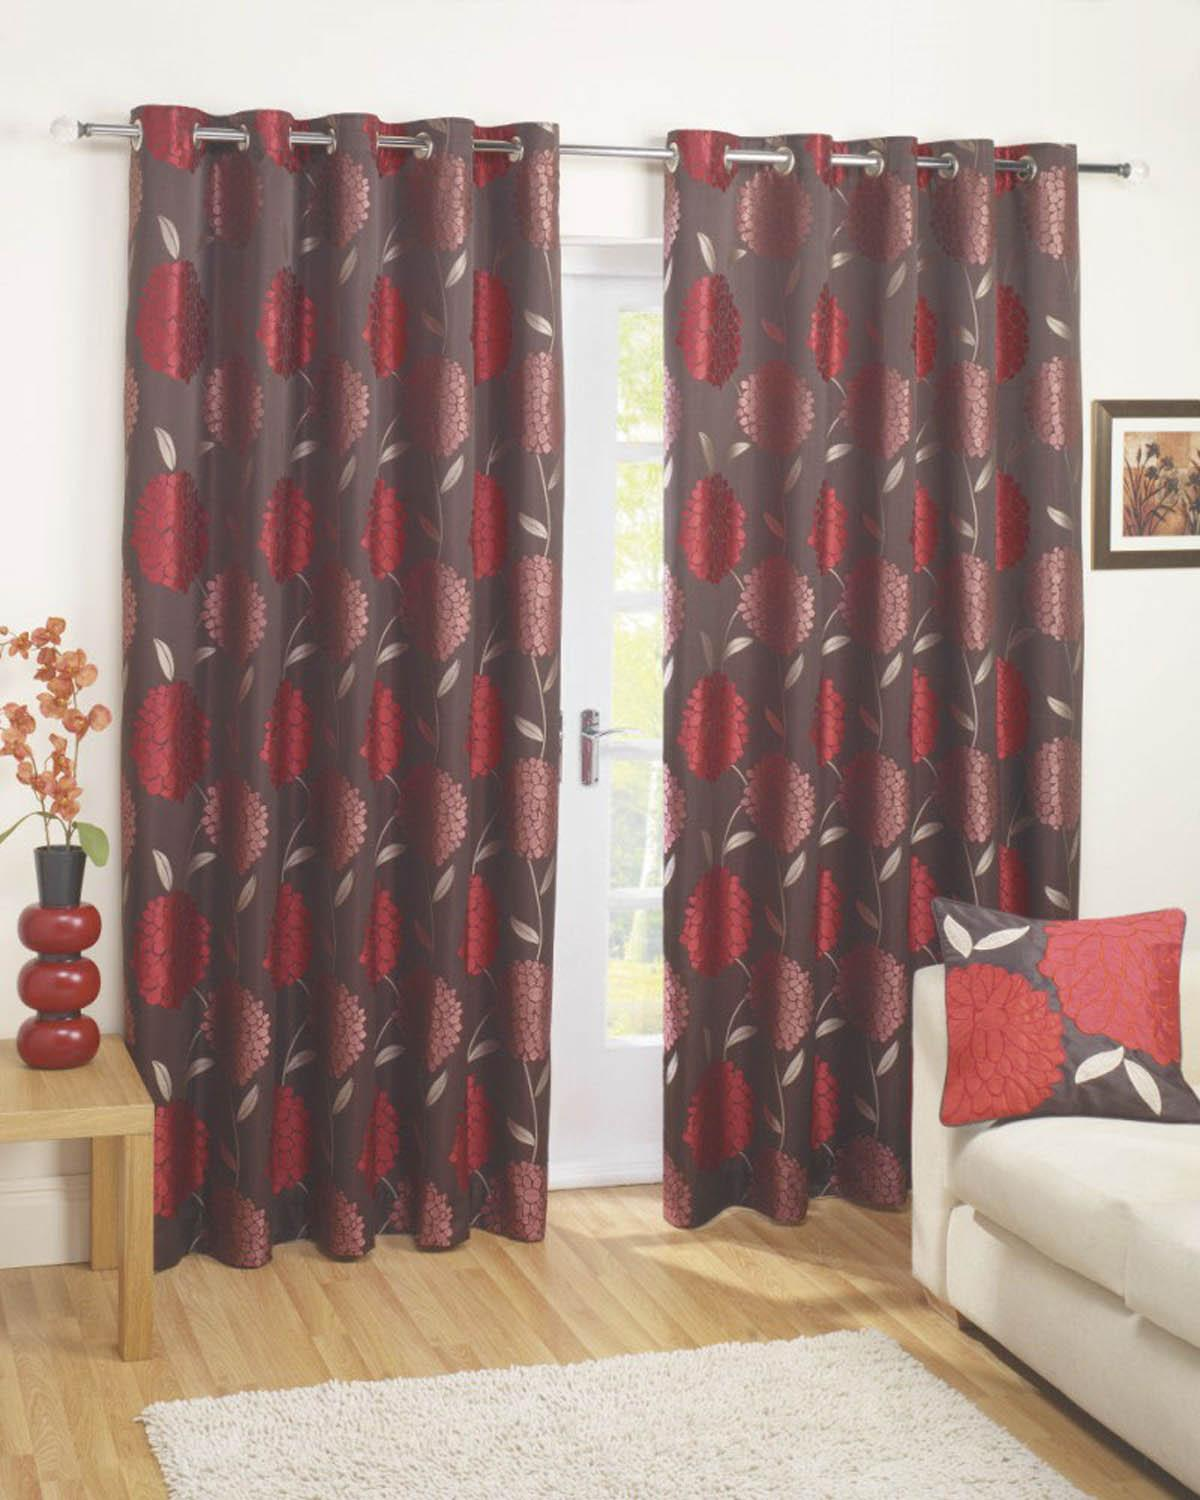 Red Como Floral Eyelet Curtains Free UK Delivery Terrys Fabrics - Ready made curtains red